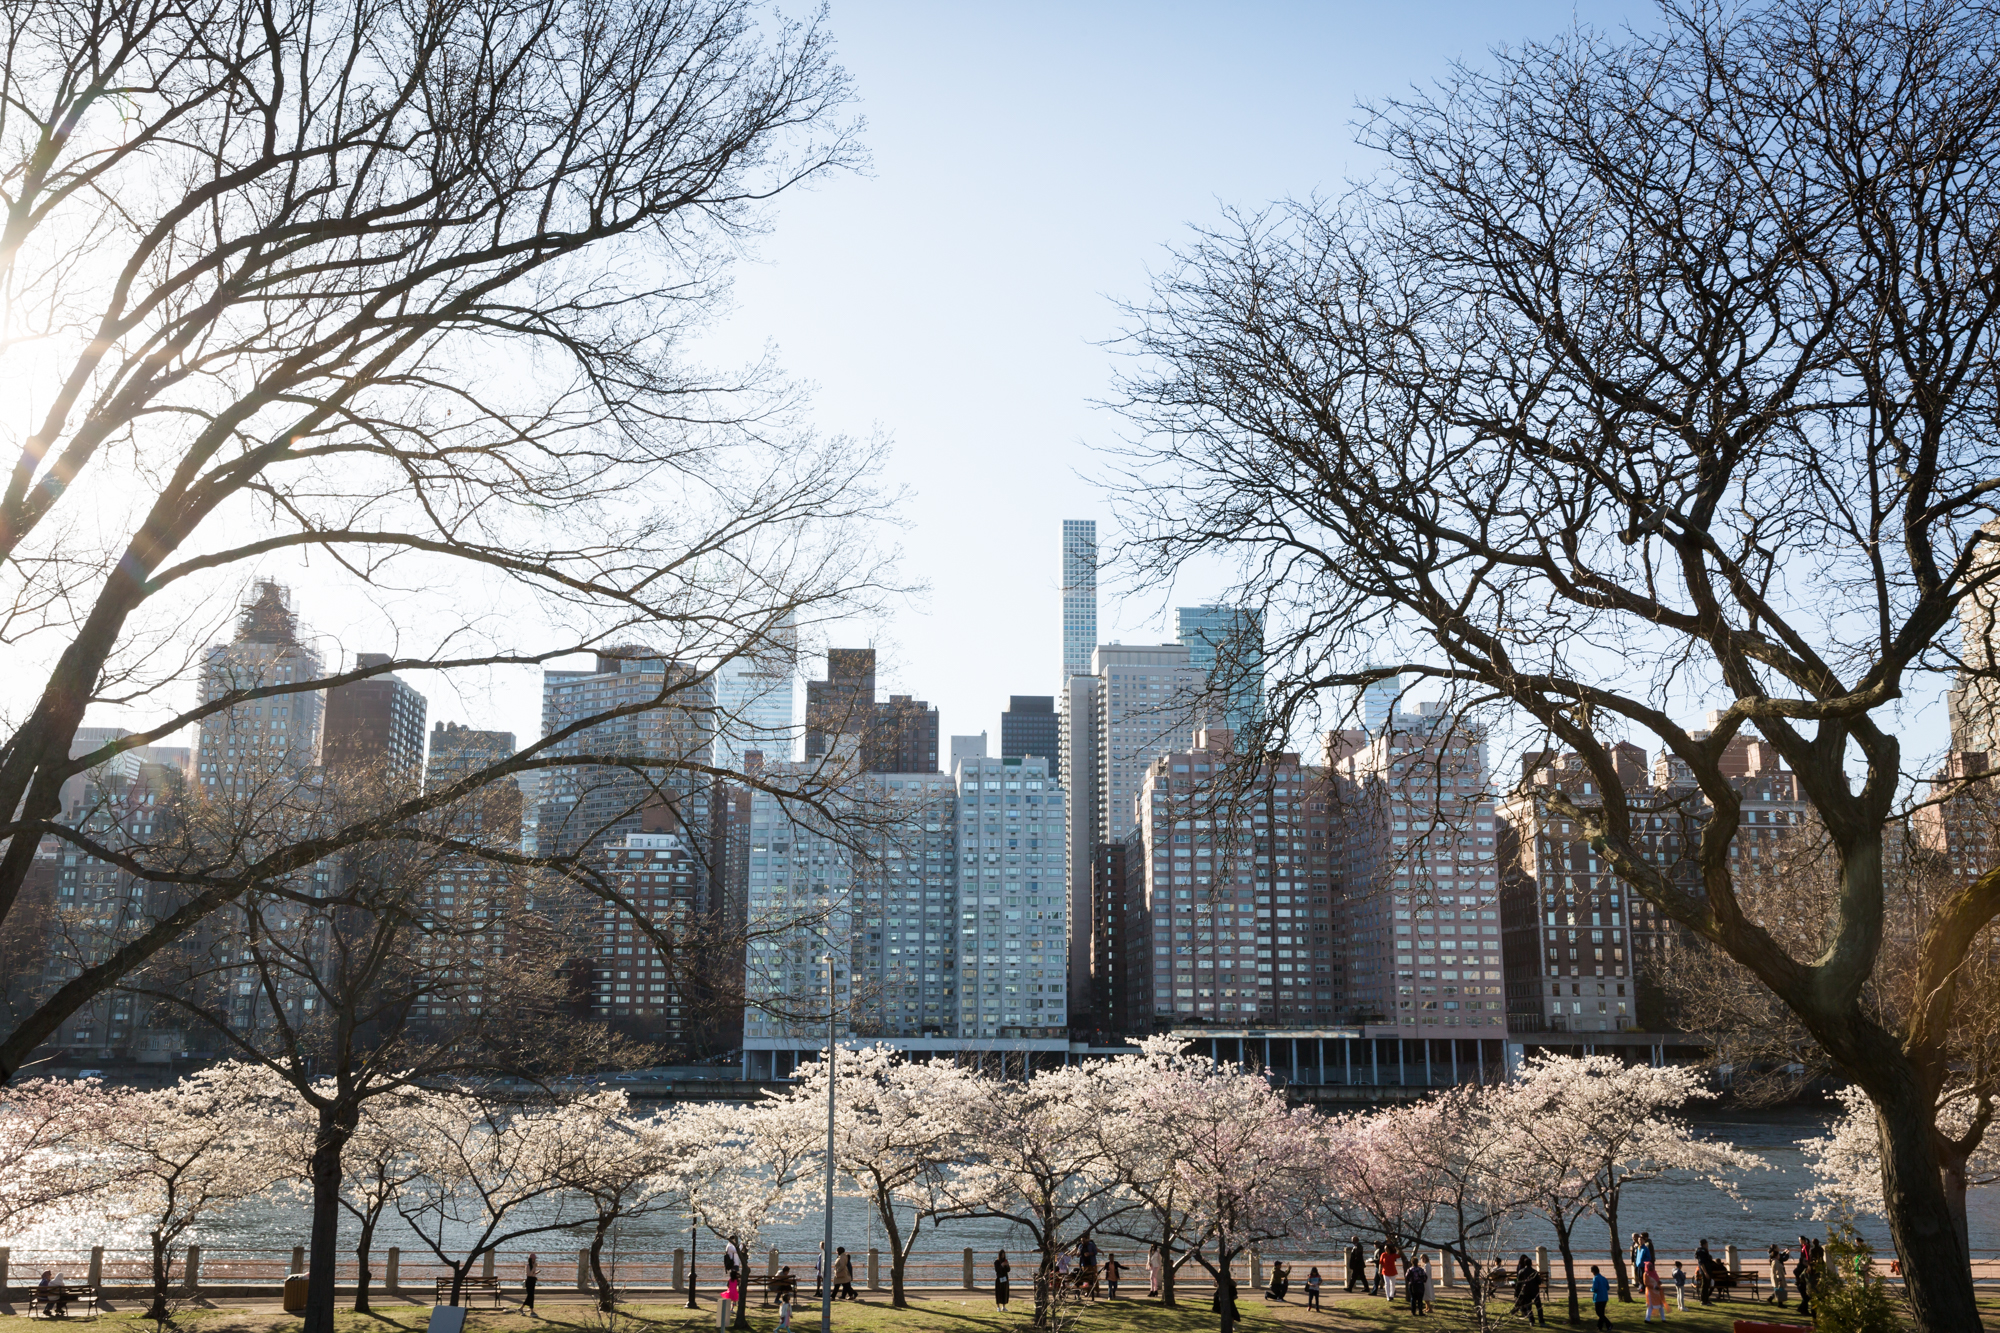 Roosevelt Island for an article on cherry blossom photo tips